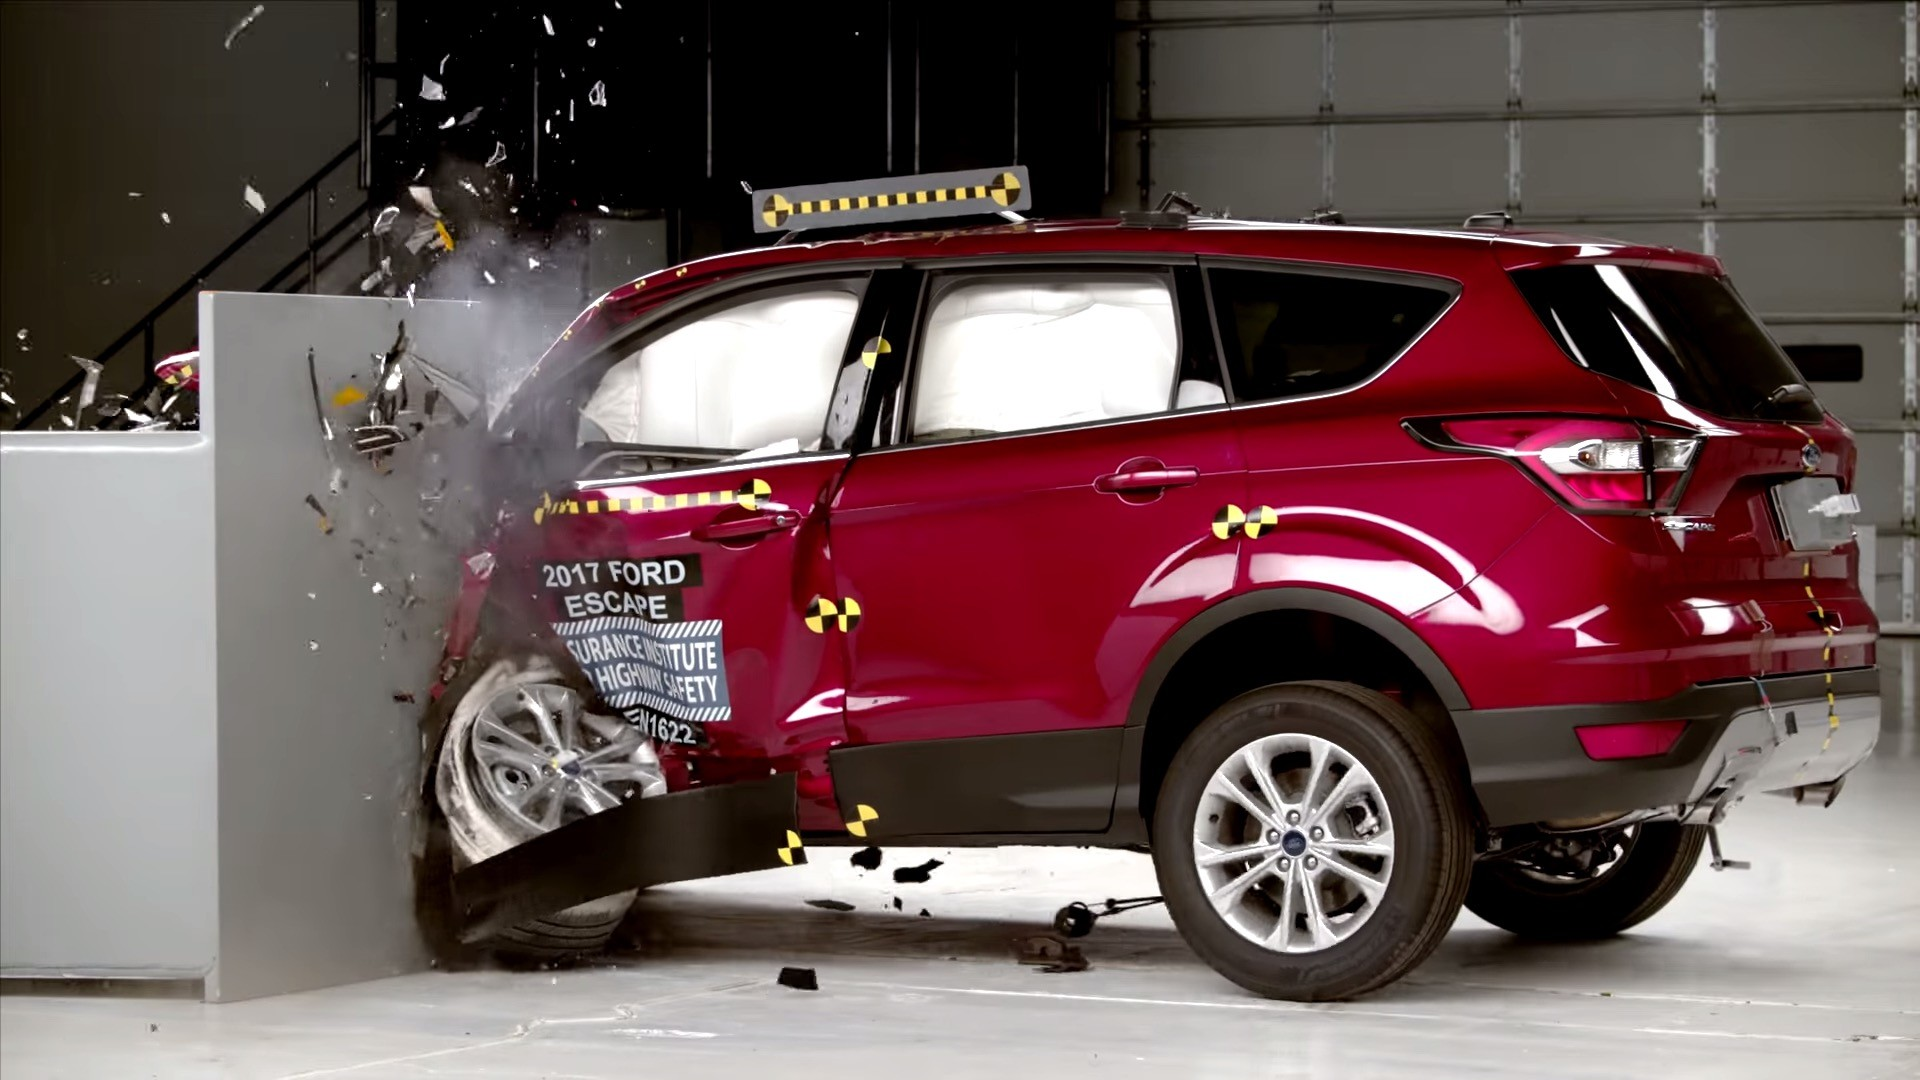 Ford escape crash test ford escape crash test